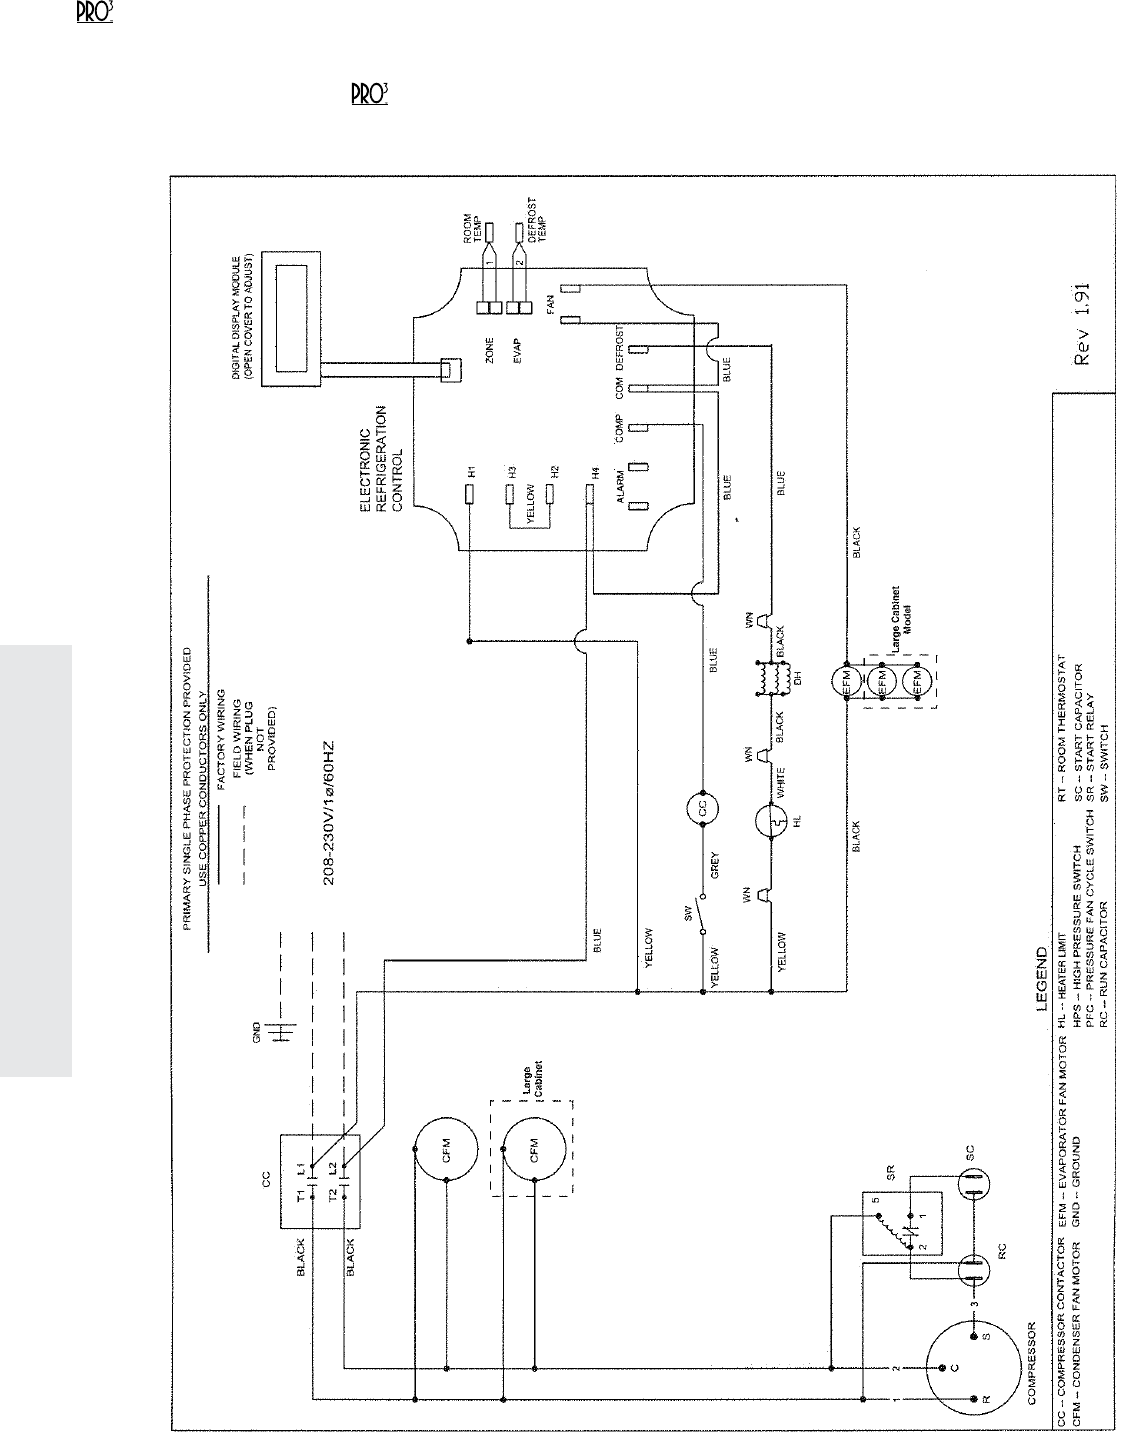 b8616a9a 7649 411a b648 d6245cba7e20 bg10 heatcraft freezer wiring diagram wiring diagram for freezer thermostat at eliteediting.co